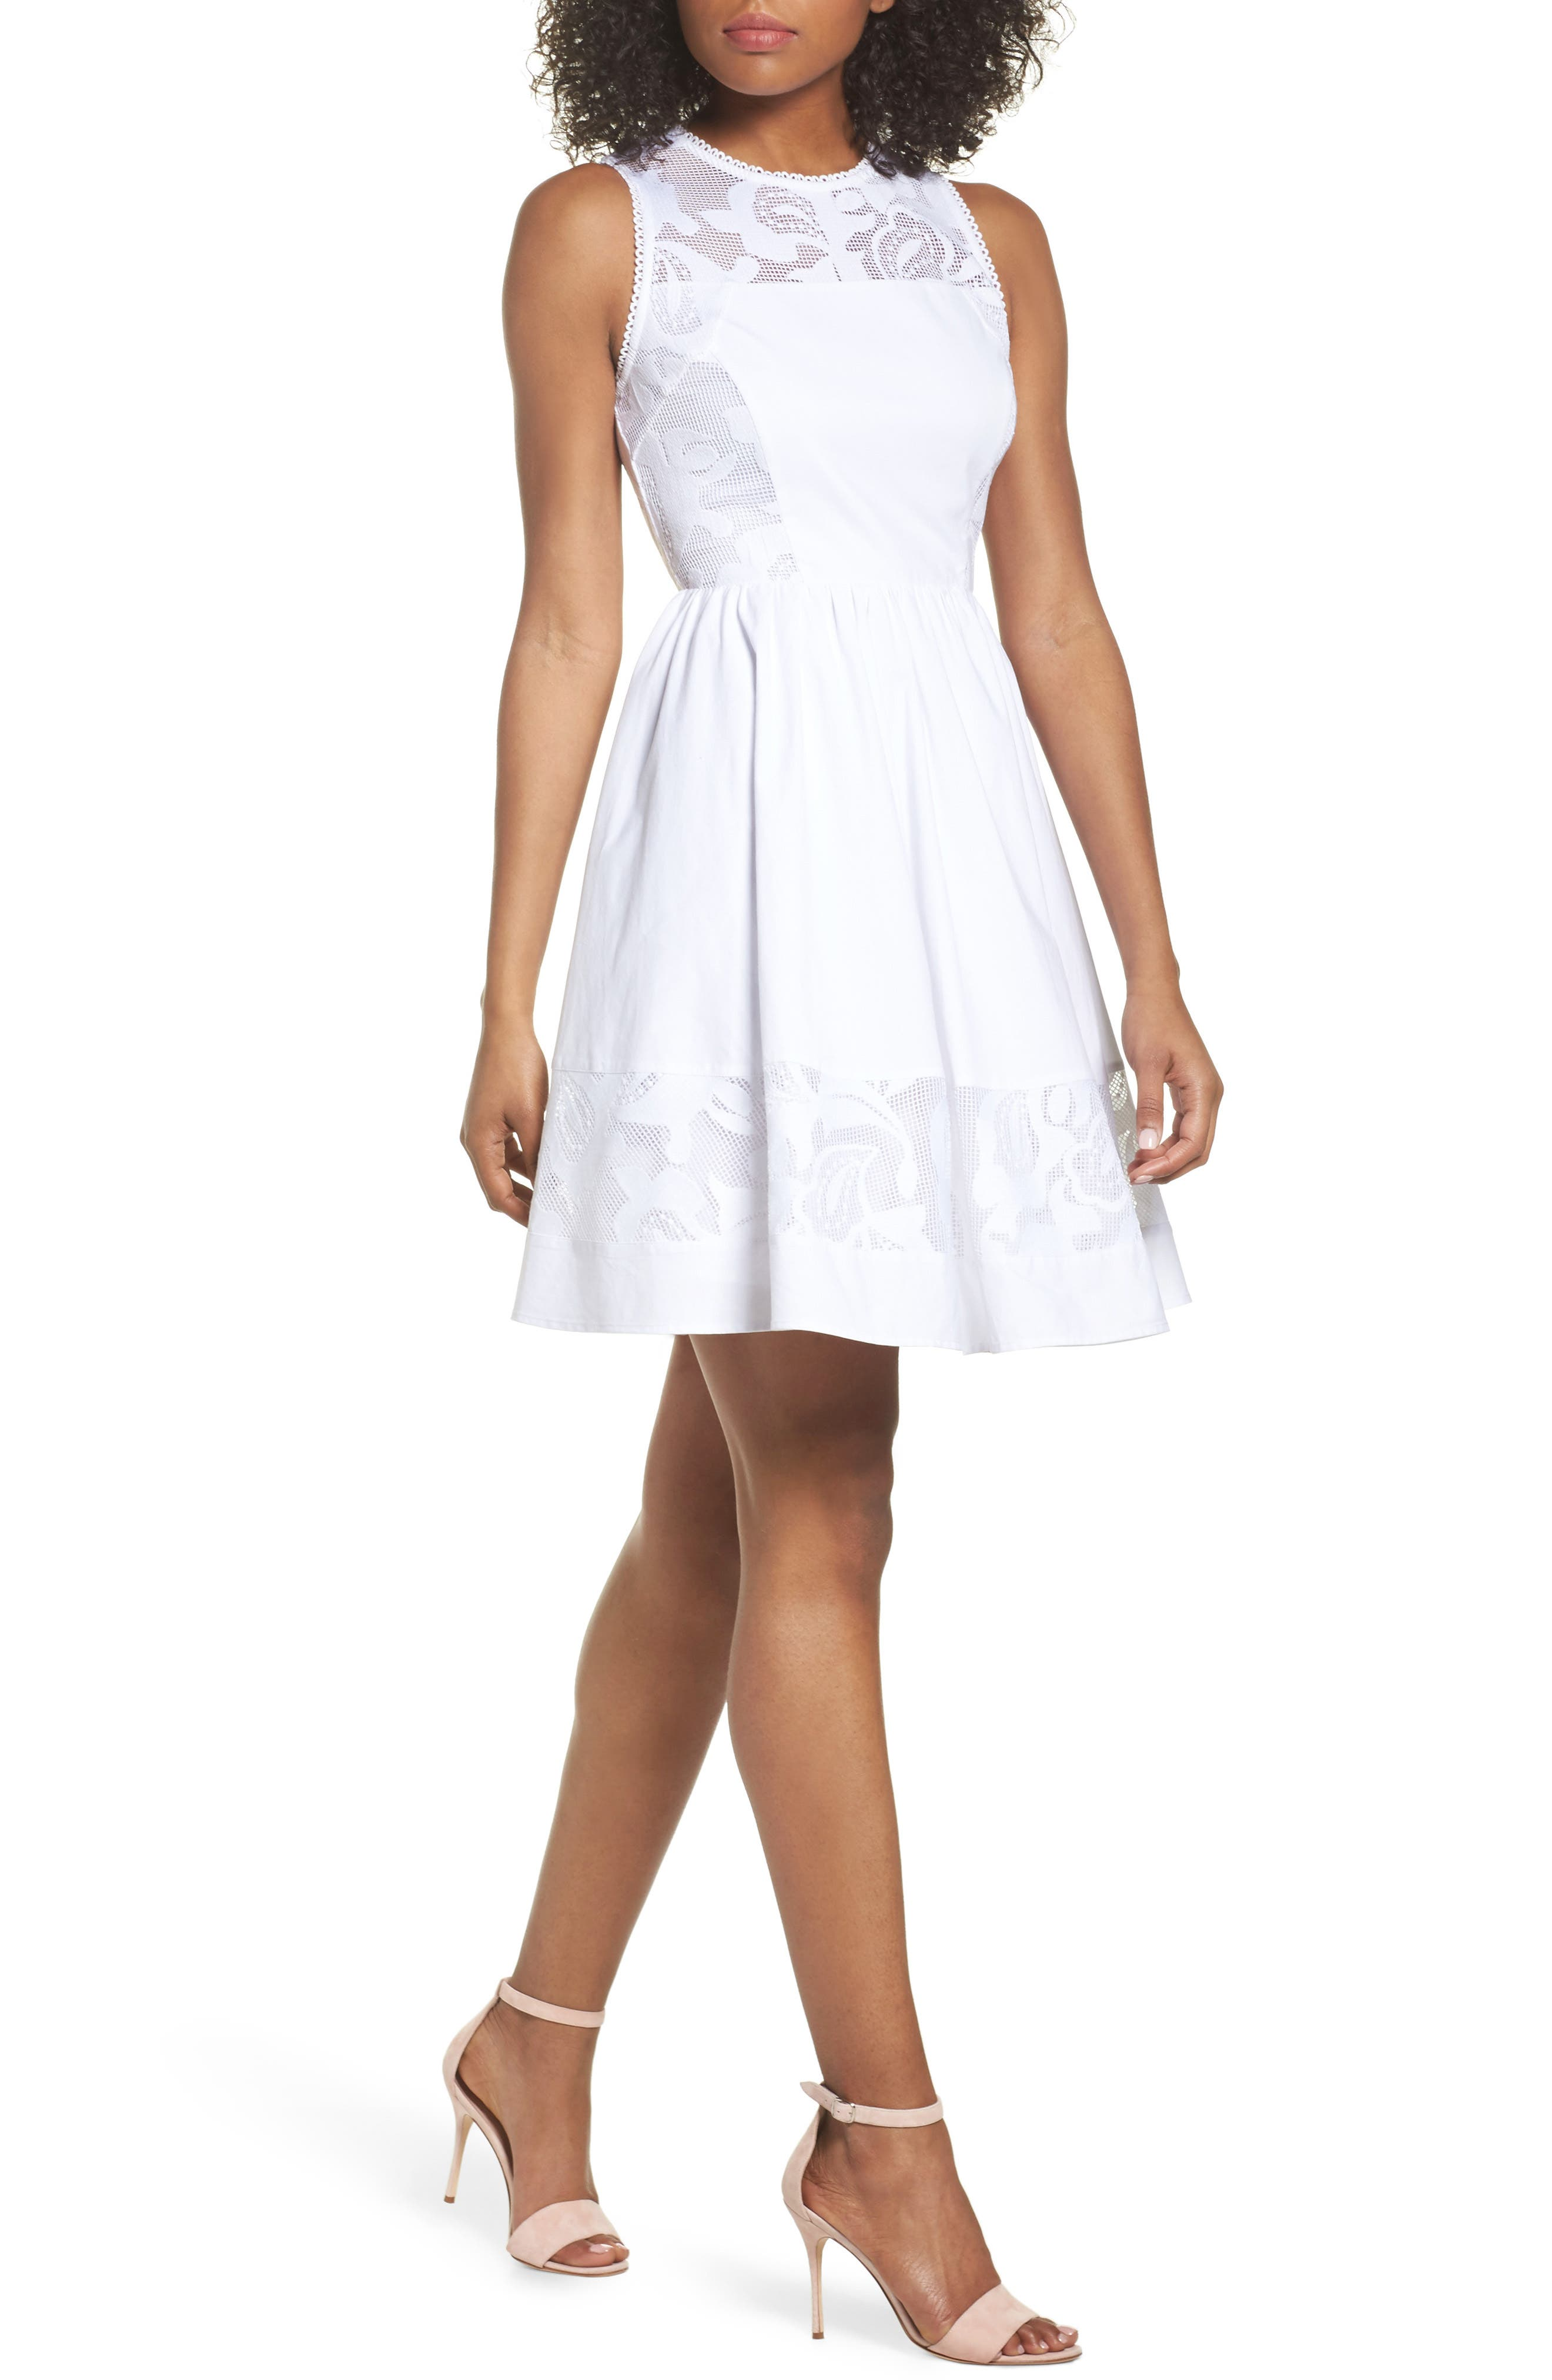 Alternate Image 1 Selected - Chelsea28 Lace Fit & Flare Dress